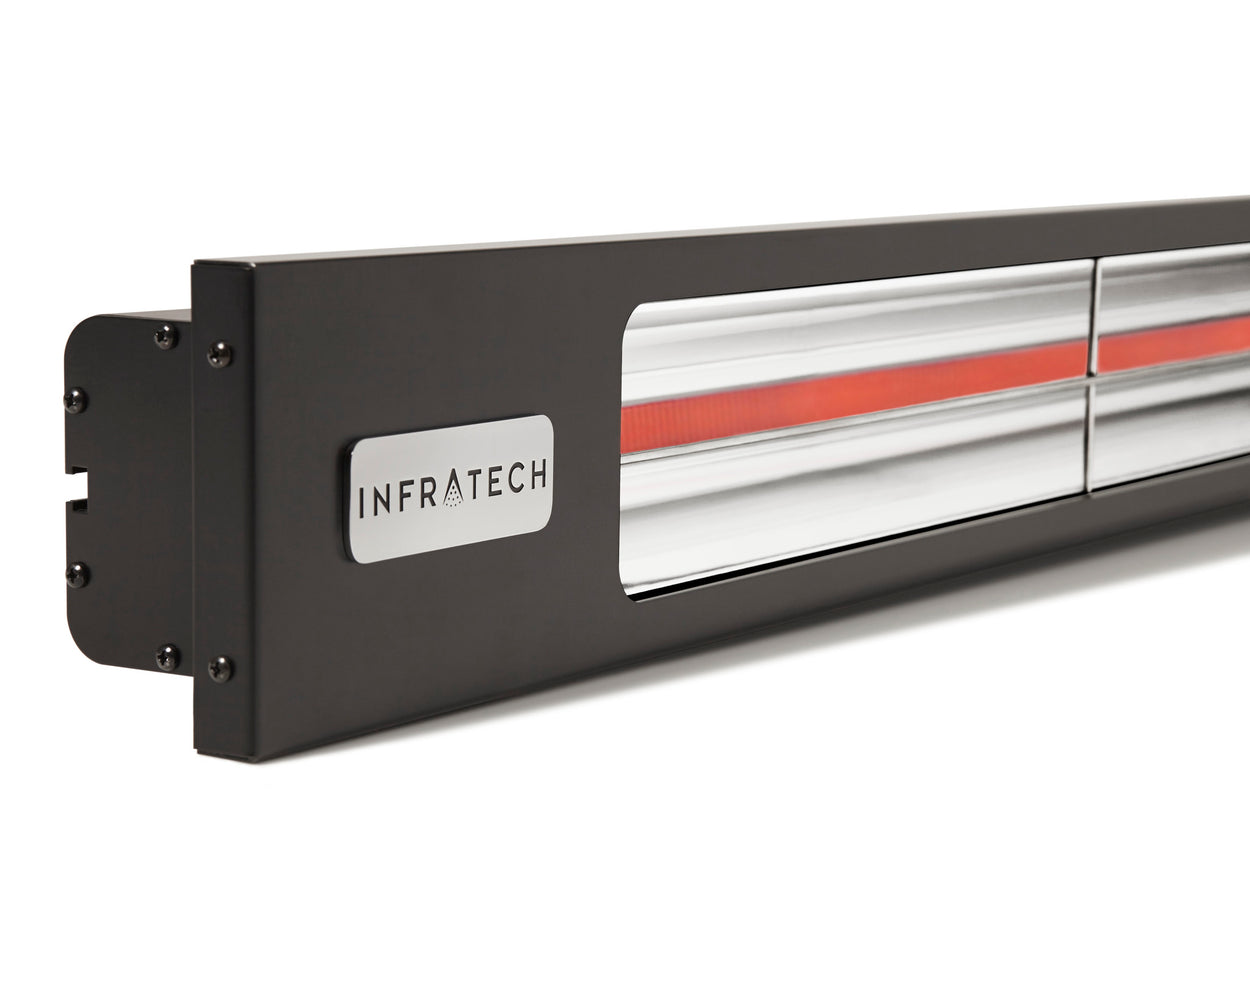 INFRATECH SL30 3KW HEATER BLACK SHADOW | Outdoor Heating NZ | Infratech NZ | Electric, heater | Outdoor Concepts